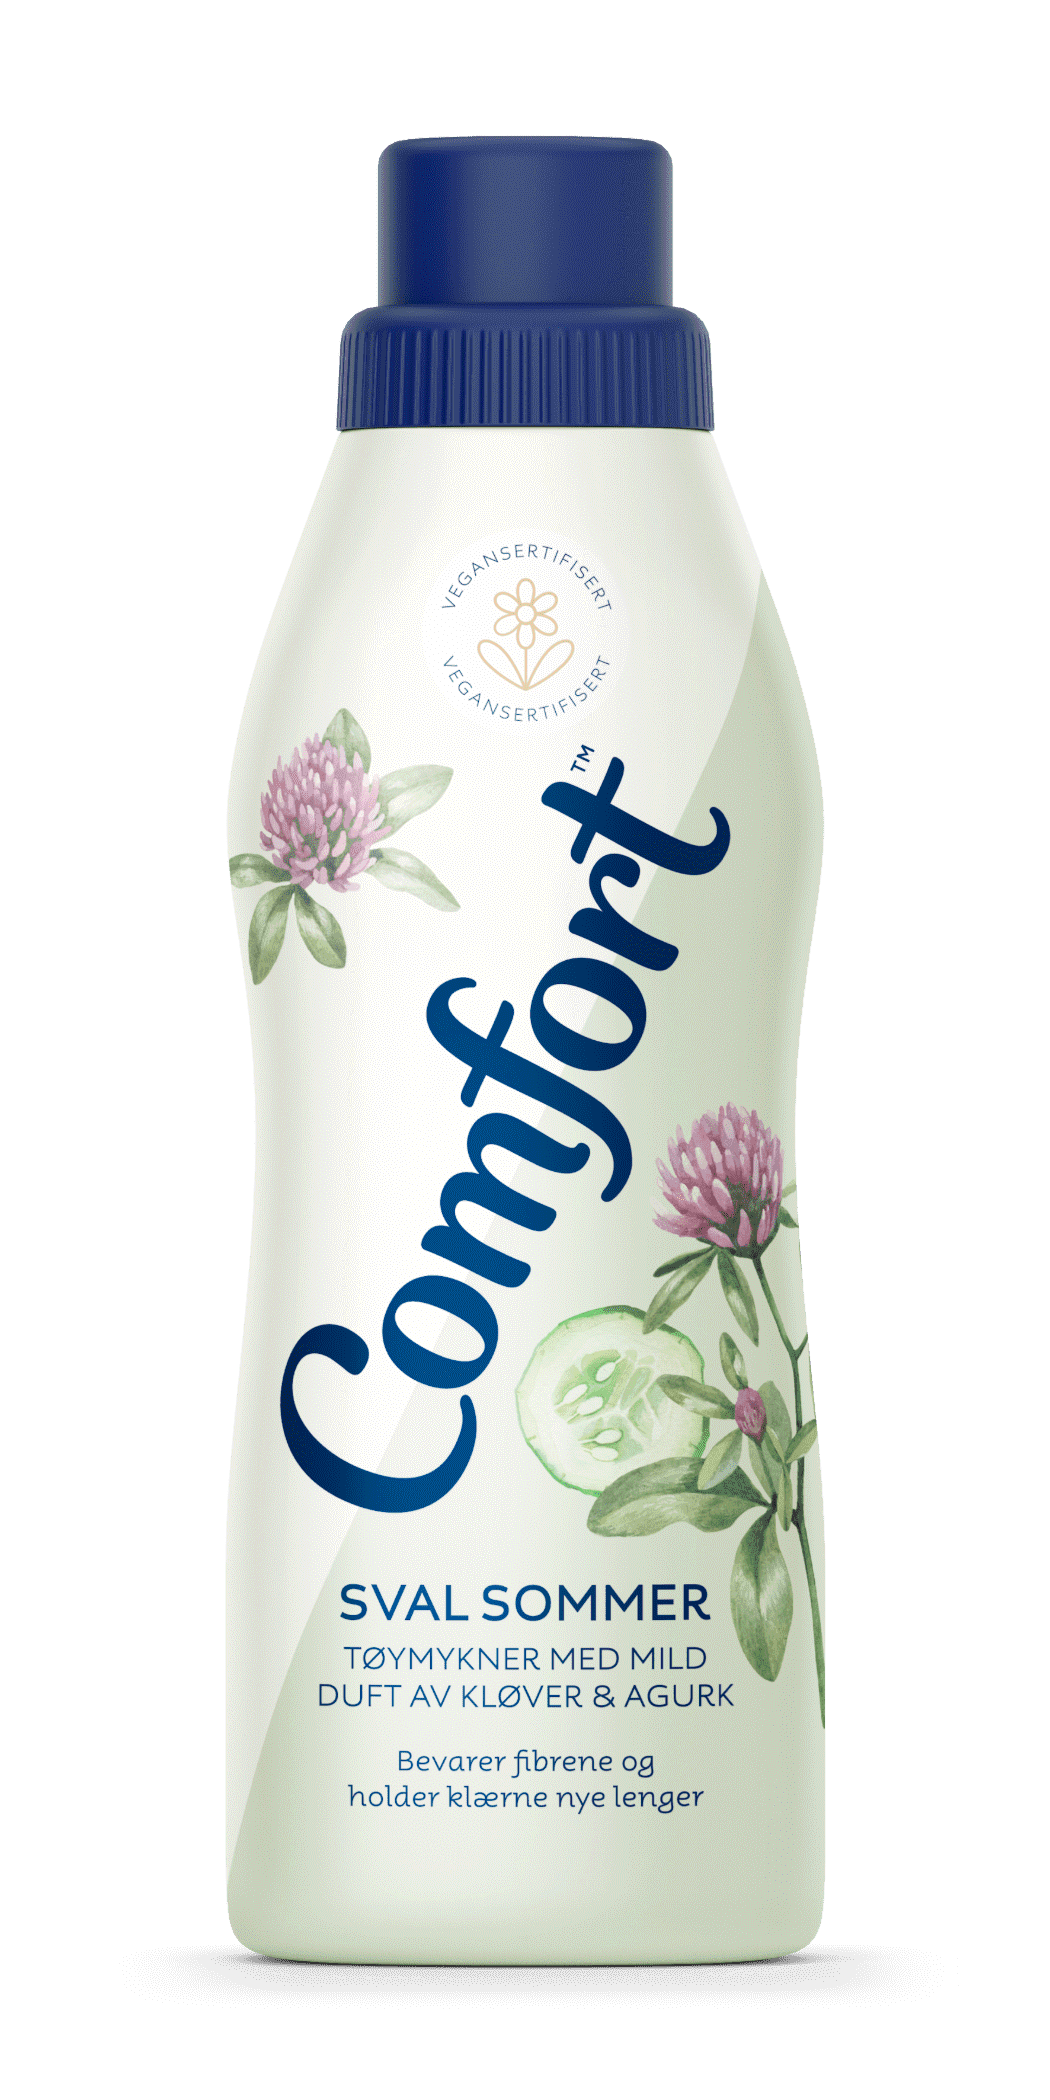 Personal care, Plastic bottle, Hand, Plant, Liquid, Product, Fluid, Flower, Drink